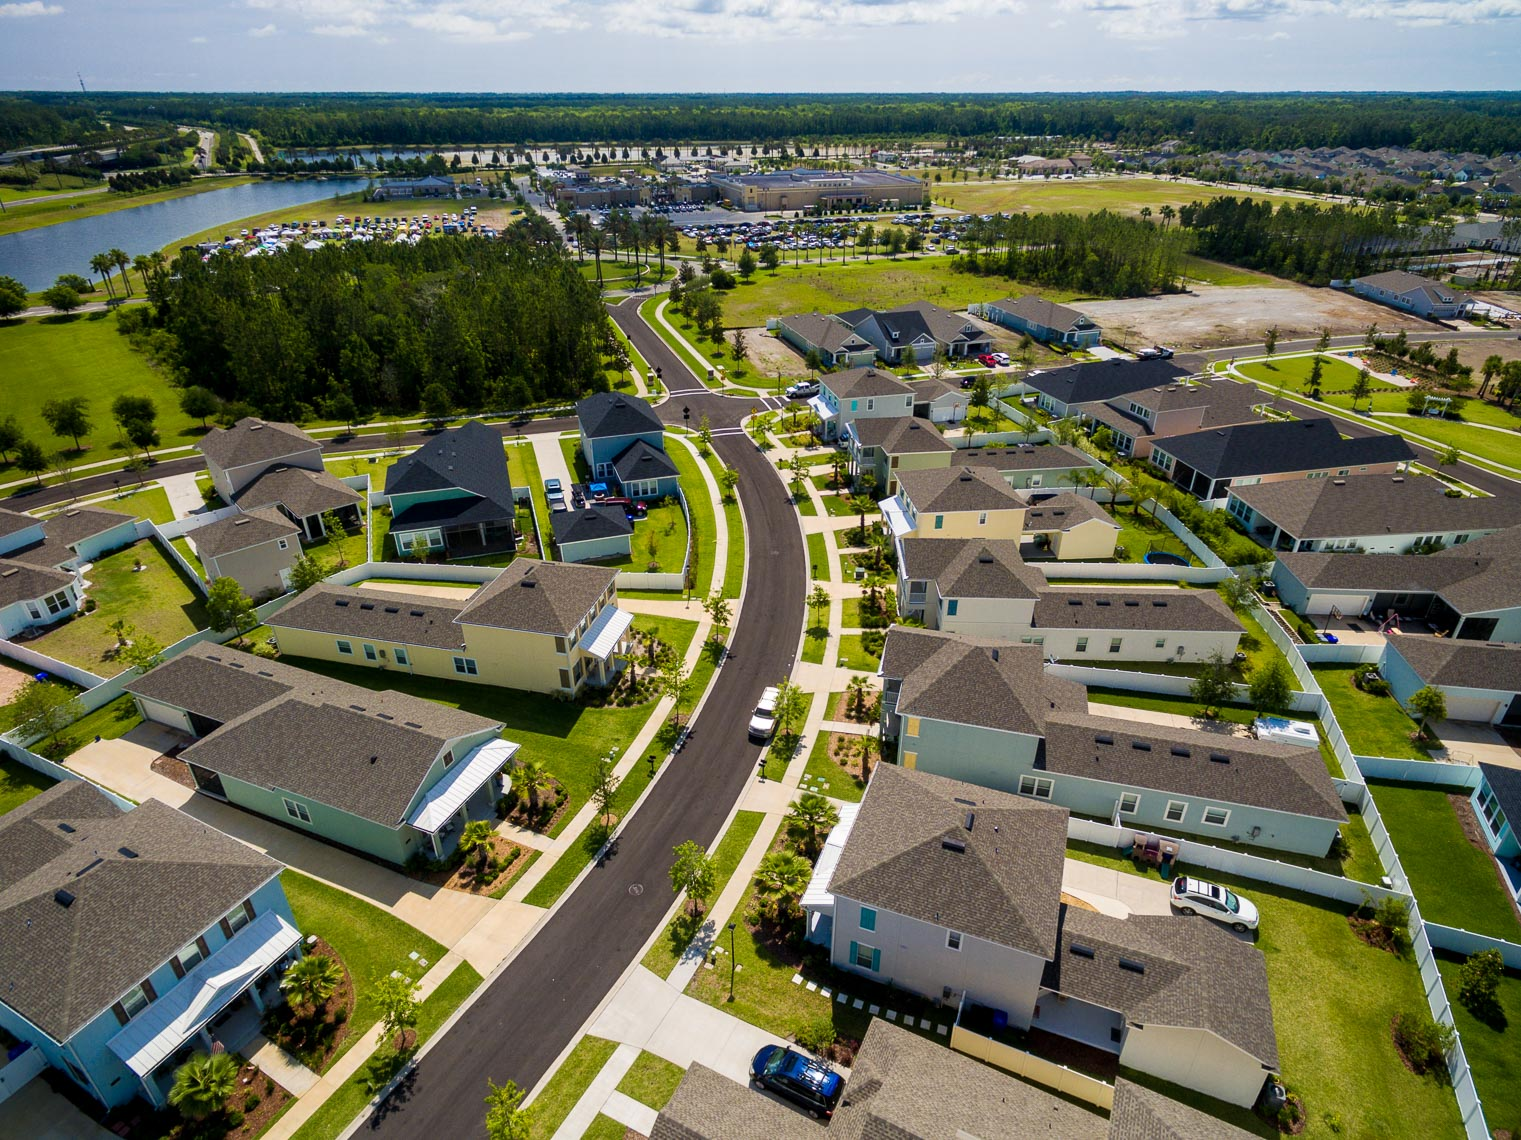 Drone Photo of Urban Sprawl in Nocatee